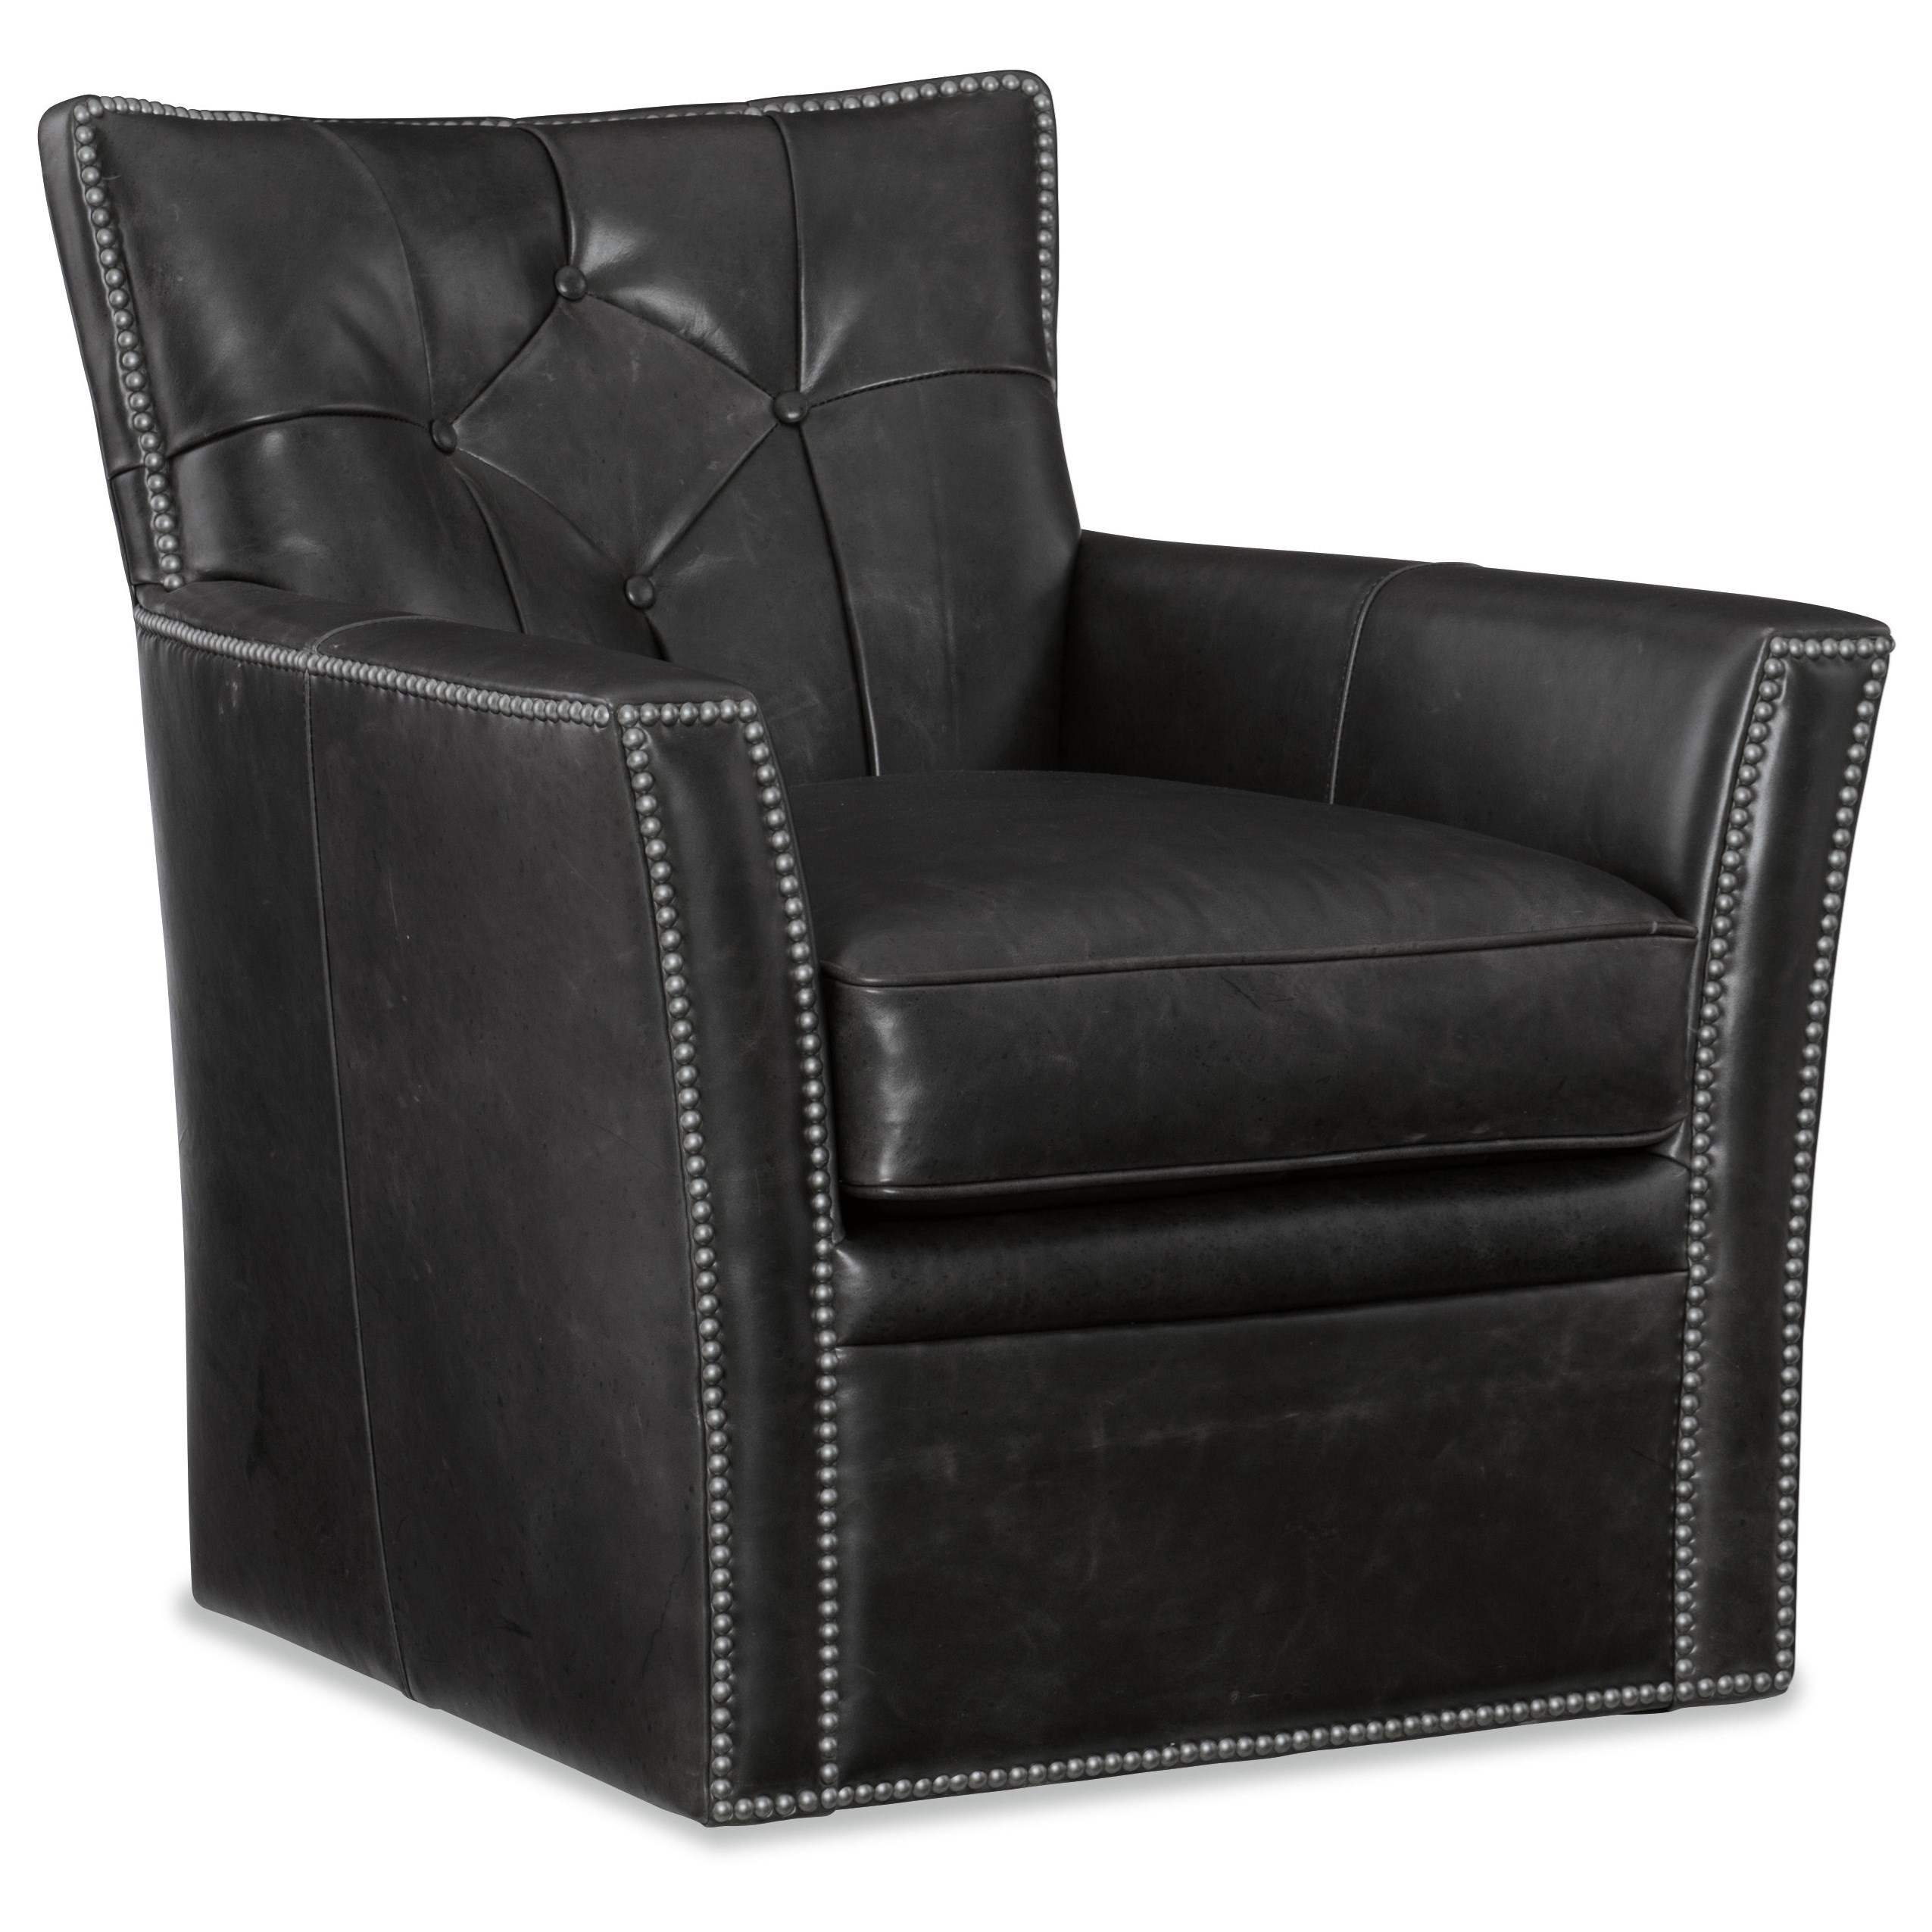 Conner Swivel Club Chair by Hooker Furniture at Miller Waldrop Furniture and Decor